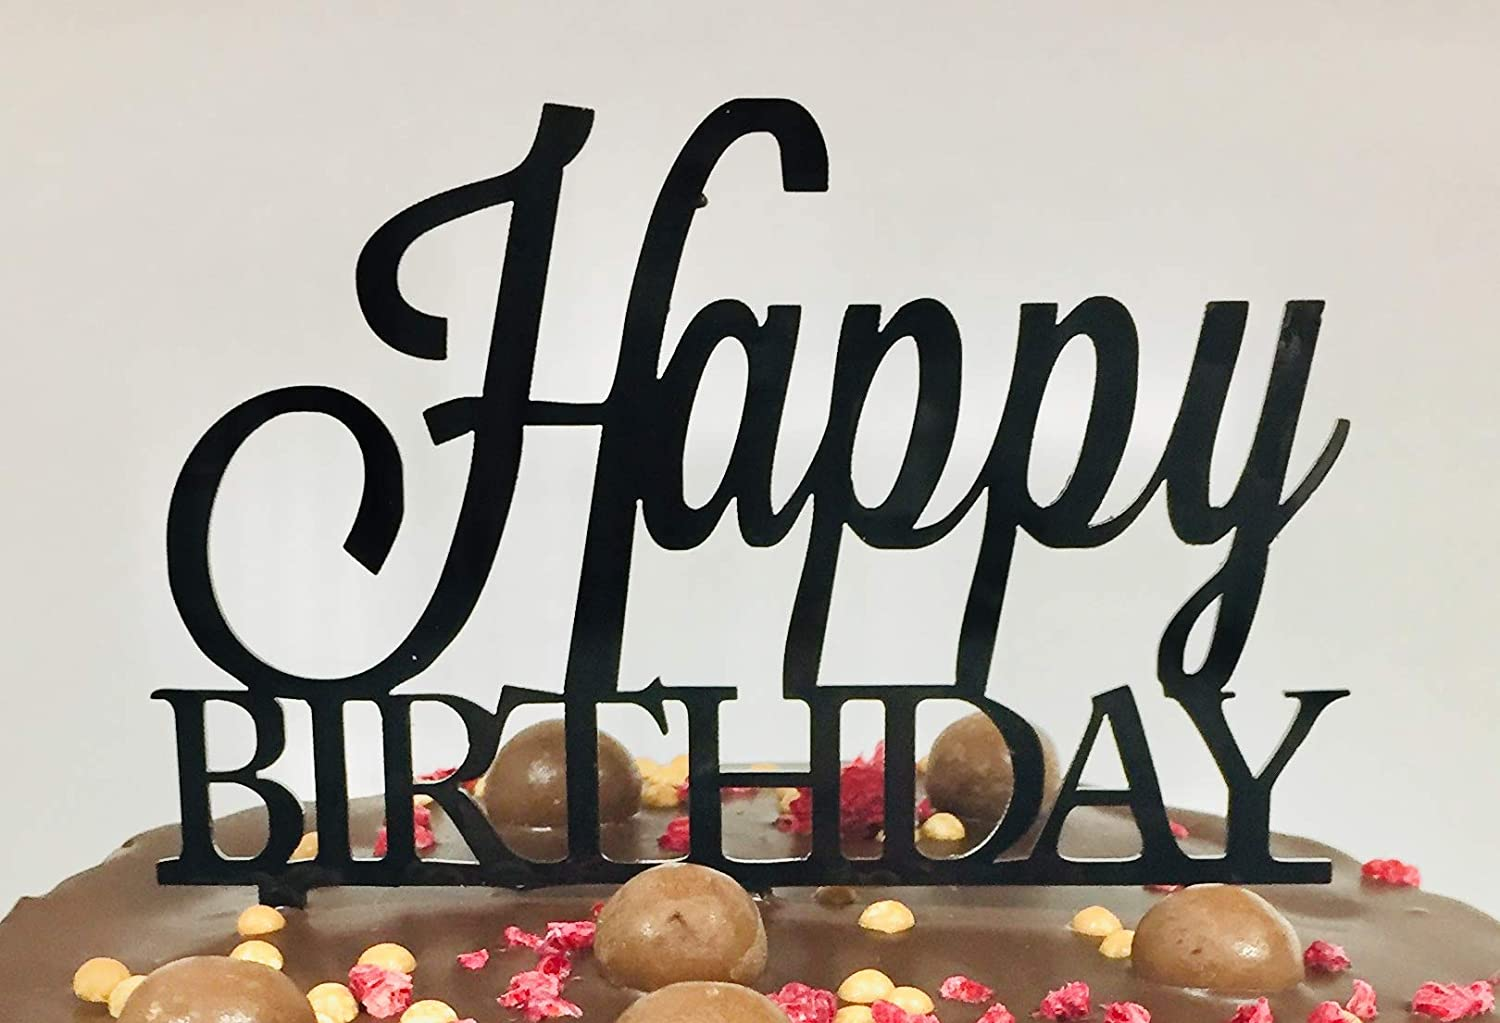 """Happy Birthday Cake Topper Designed by Professional Baker 130mm x 123mm (5x4.8""""). Turns Any Cake Into a Masterpiece. Reusable Strong Acrylic with Stylish Script in Black for Wow Factor"""